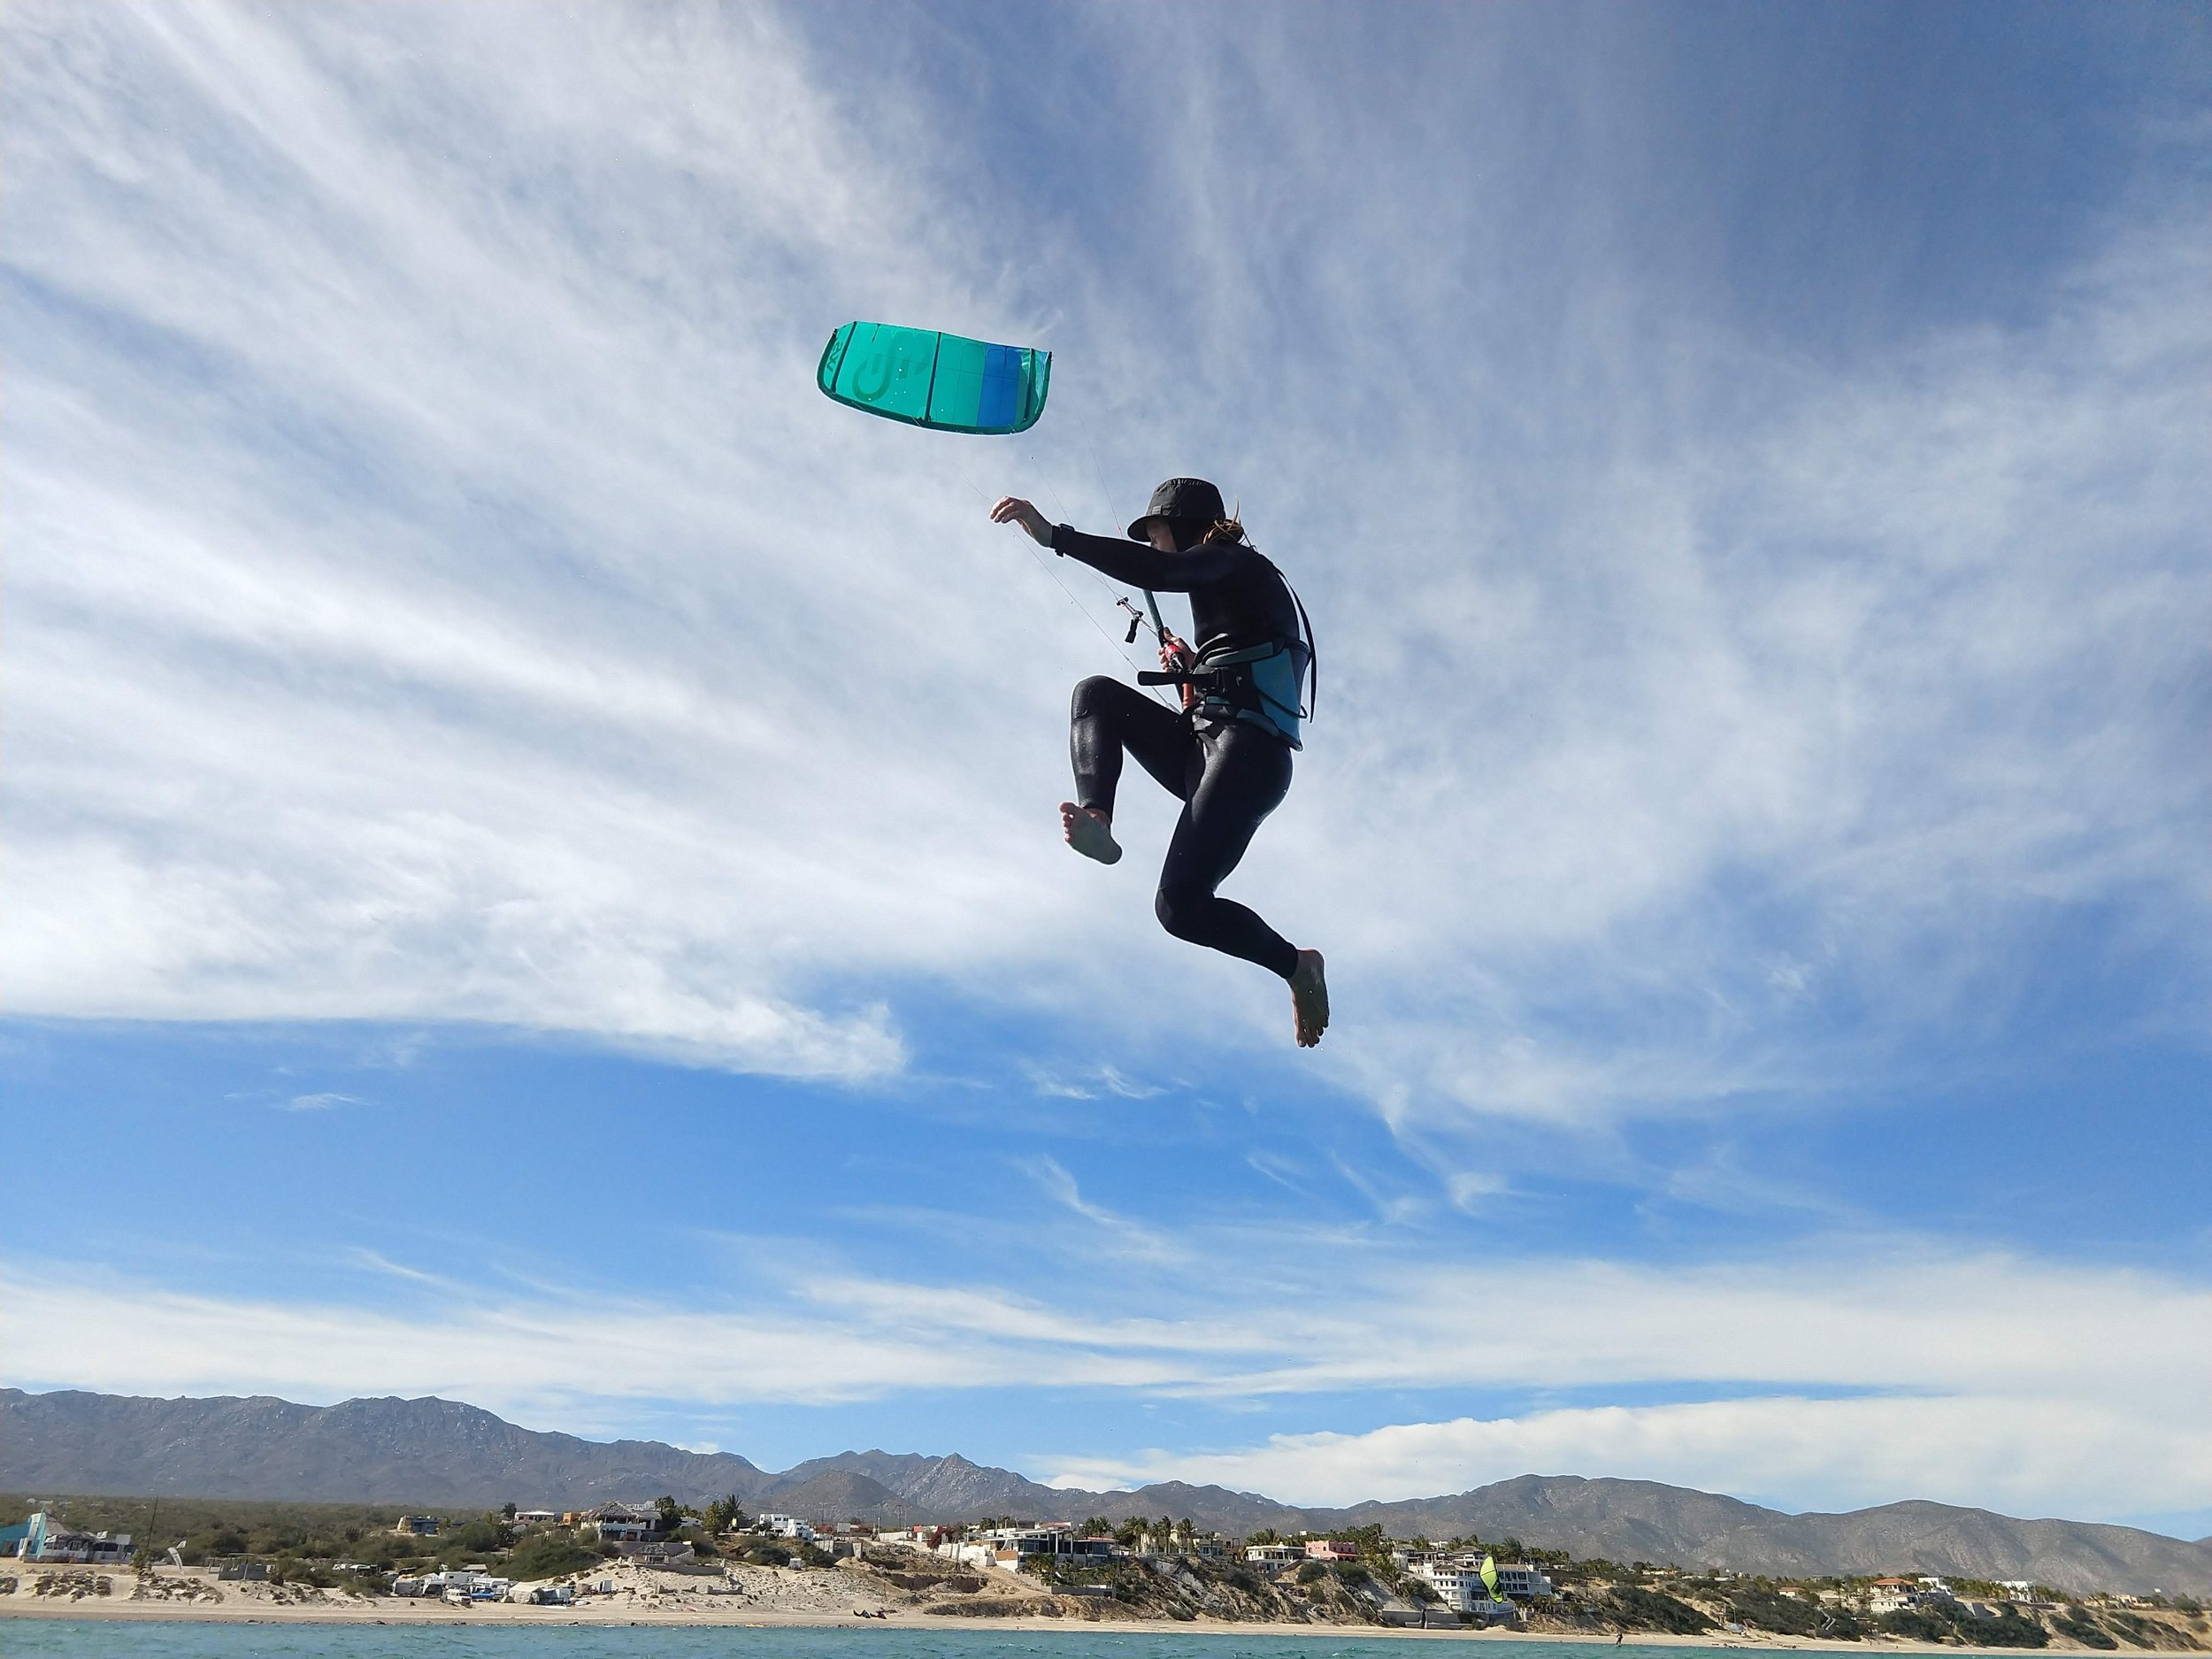 Luke Gandy, Texas - Luke is a goofy, lighthearted southern boy who loves to go out on a sweet sweet dance with his foil. Well, this pic is him just dancing with his kite. Great with kids and beginners, Luke's patience and encouraging instruction will get you riding.